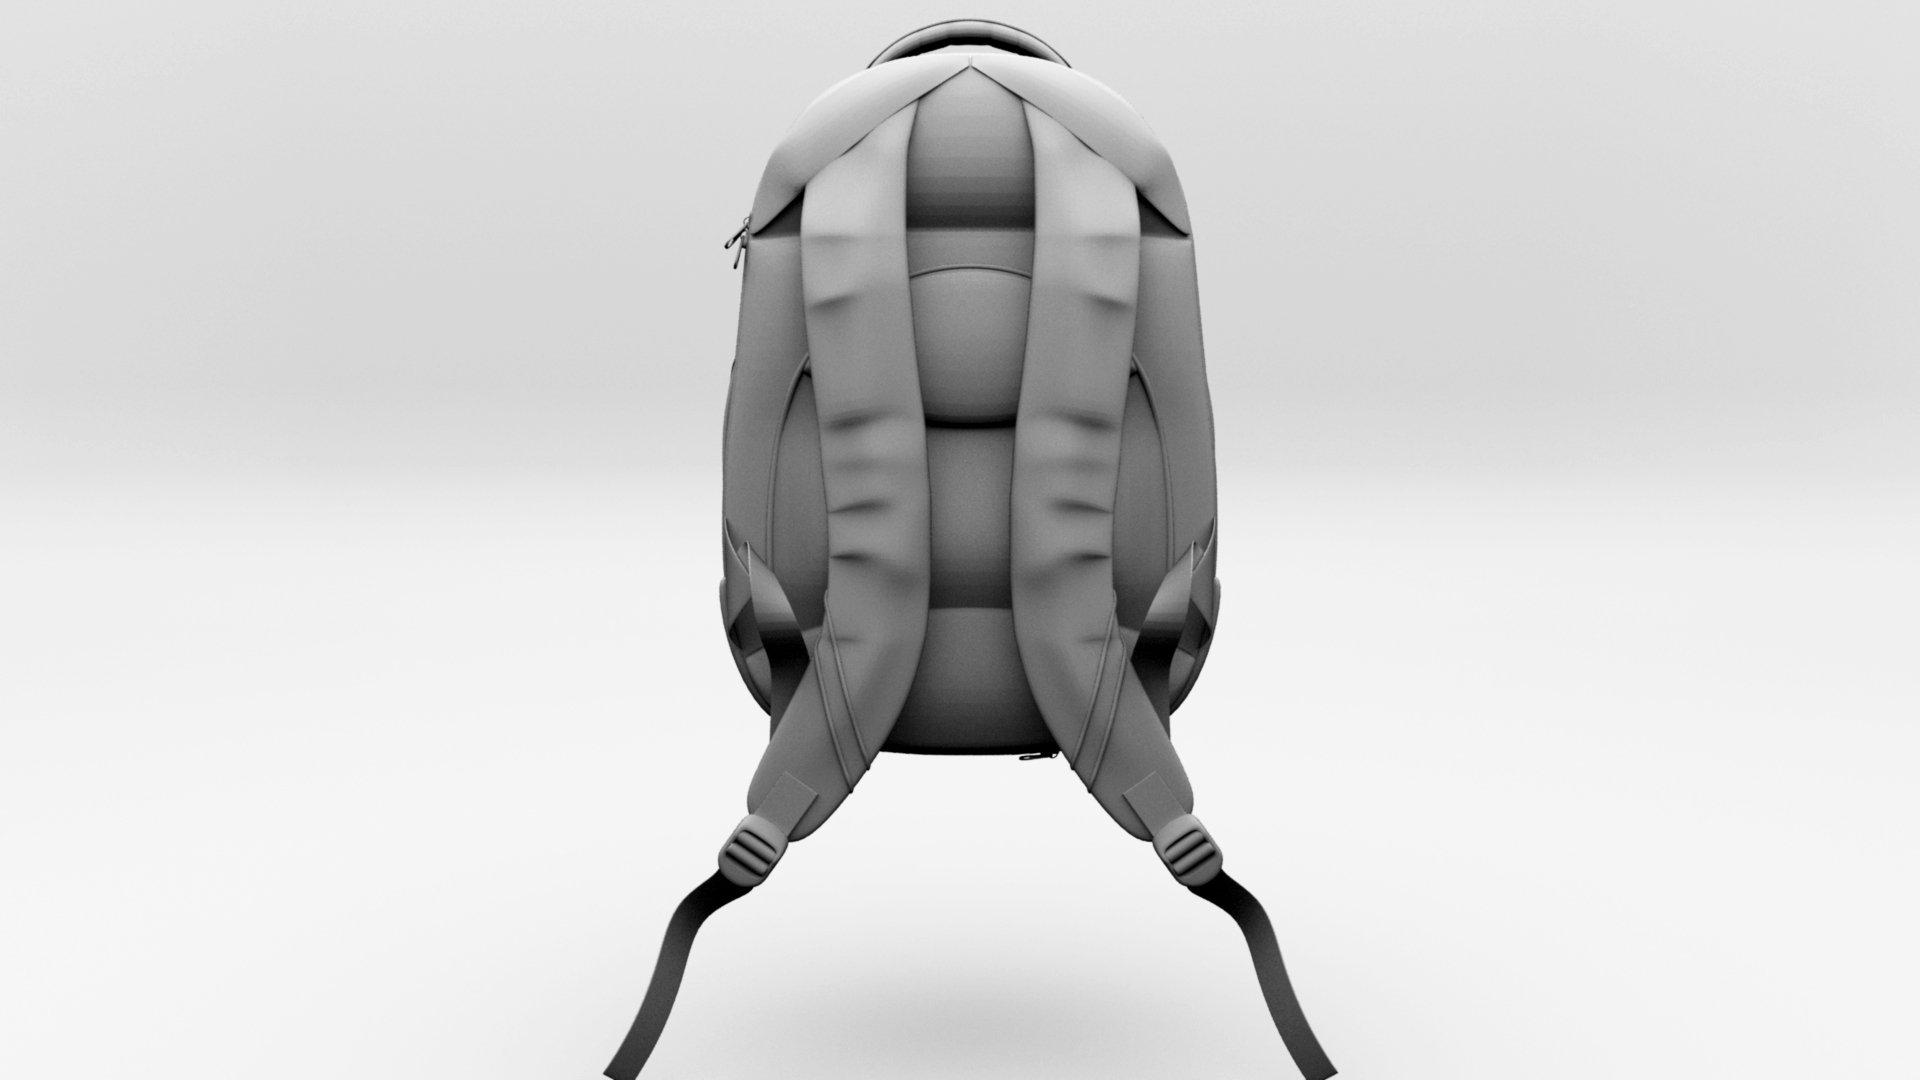 backpack 01 3d model max fbx ma mb obj 286047